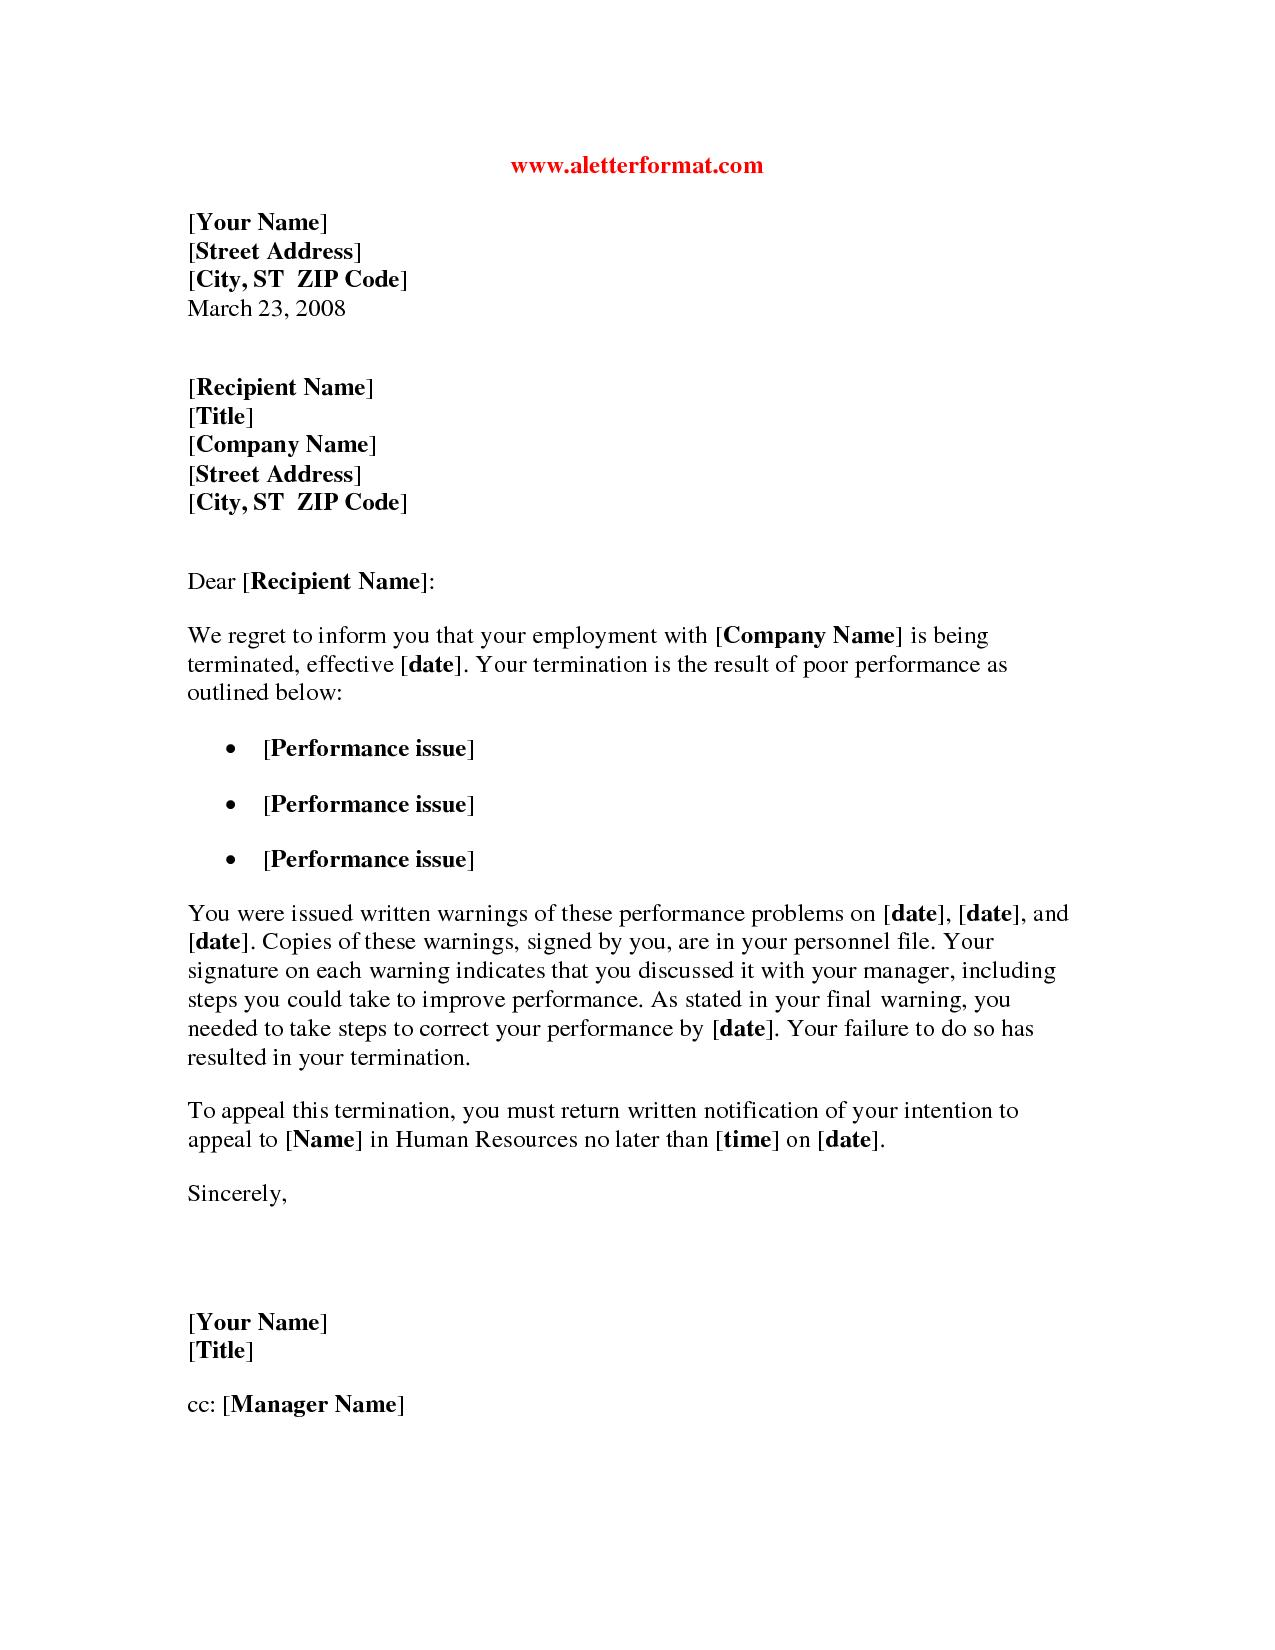 Employee Termination Letter Template Free